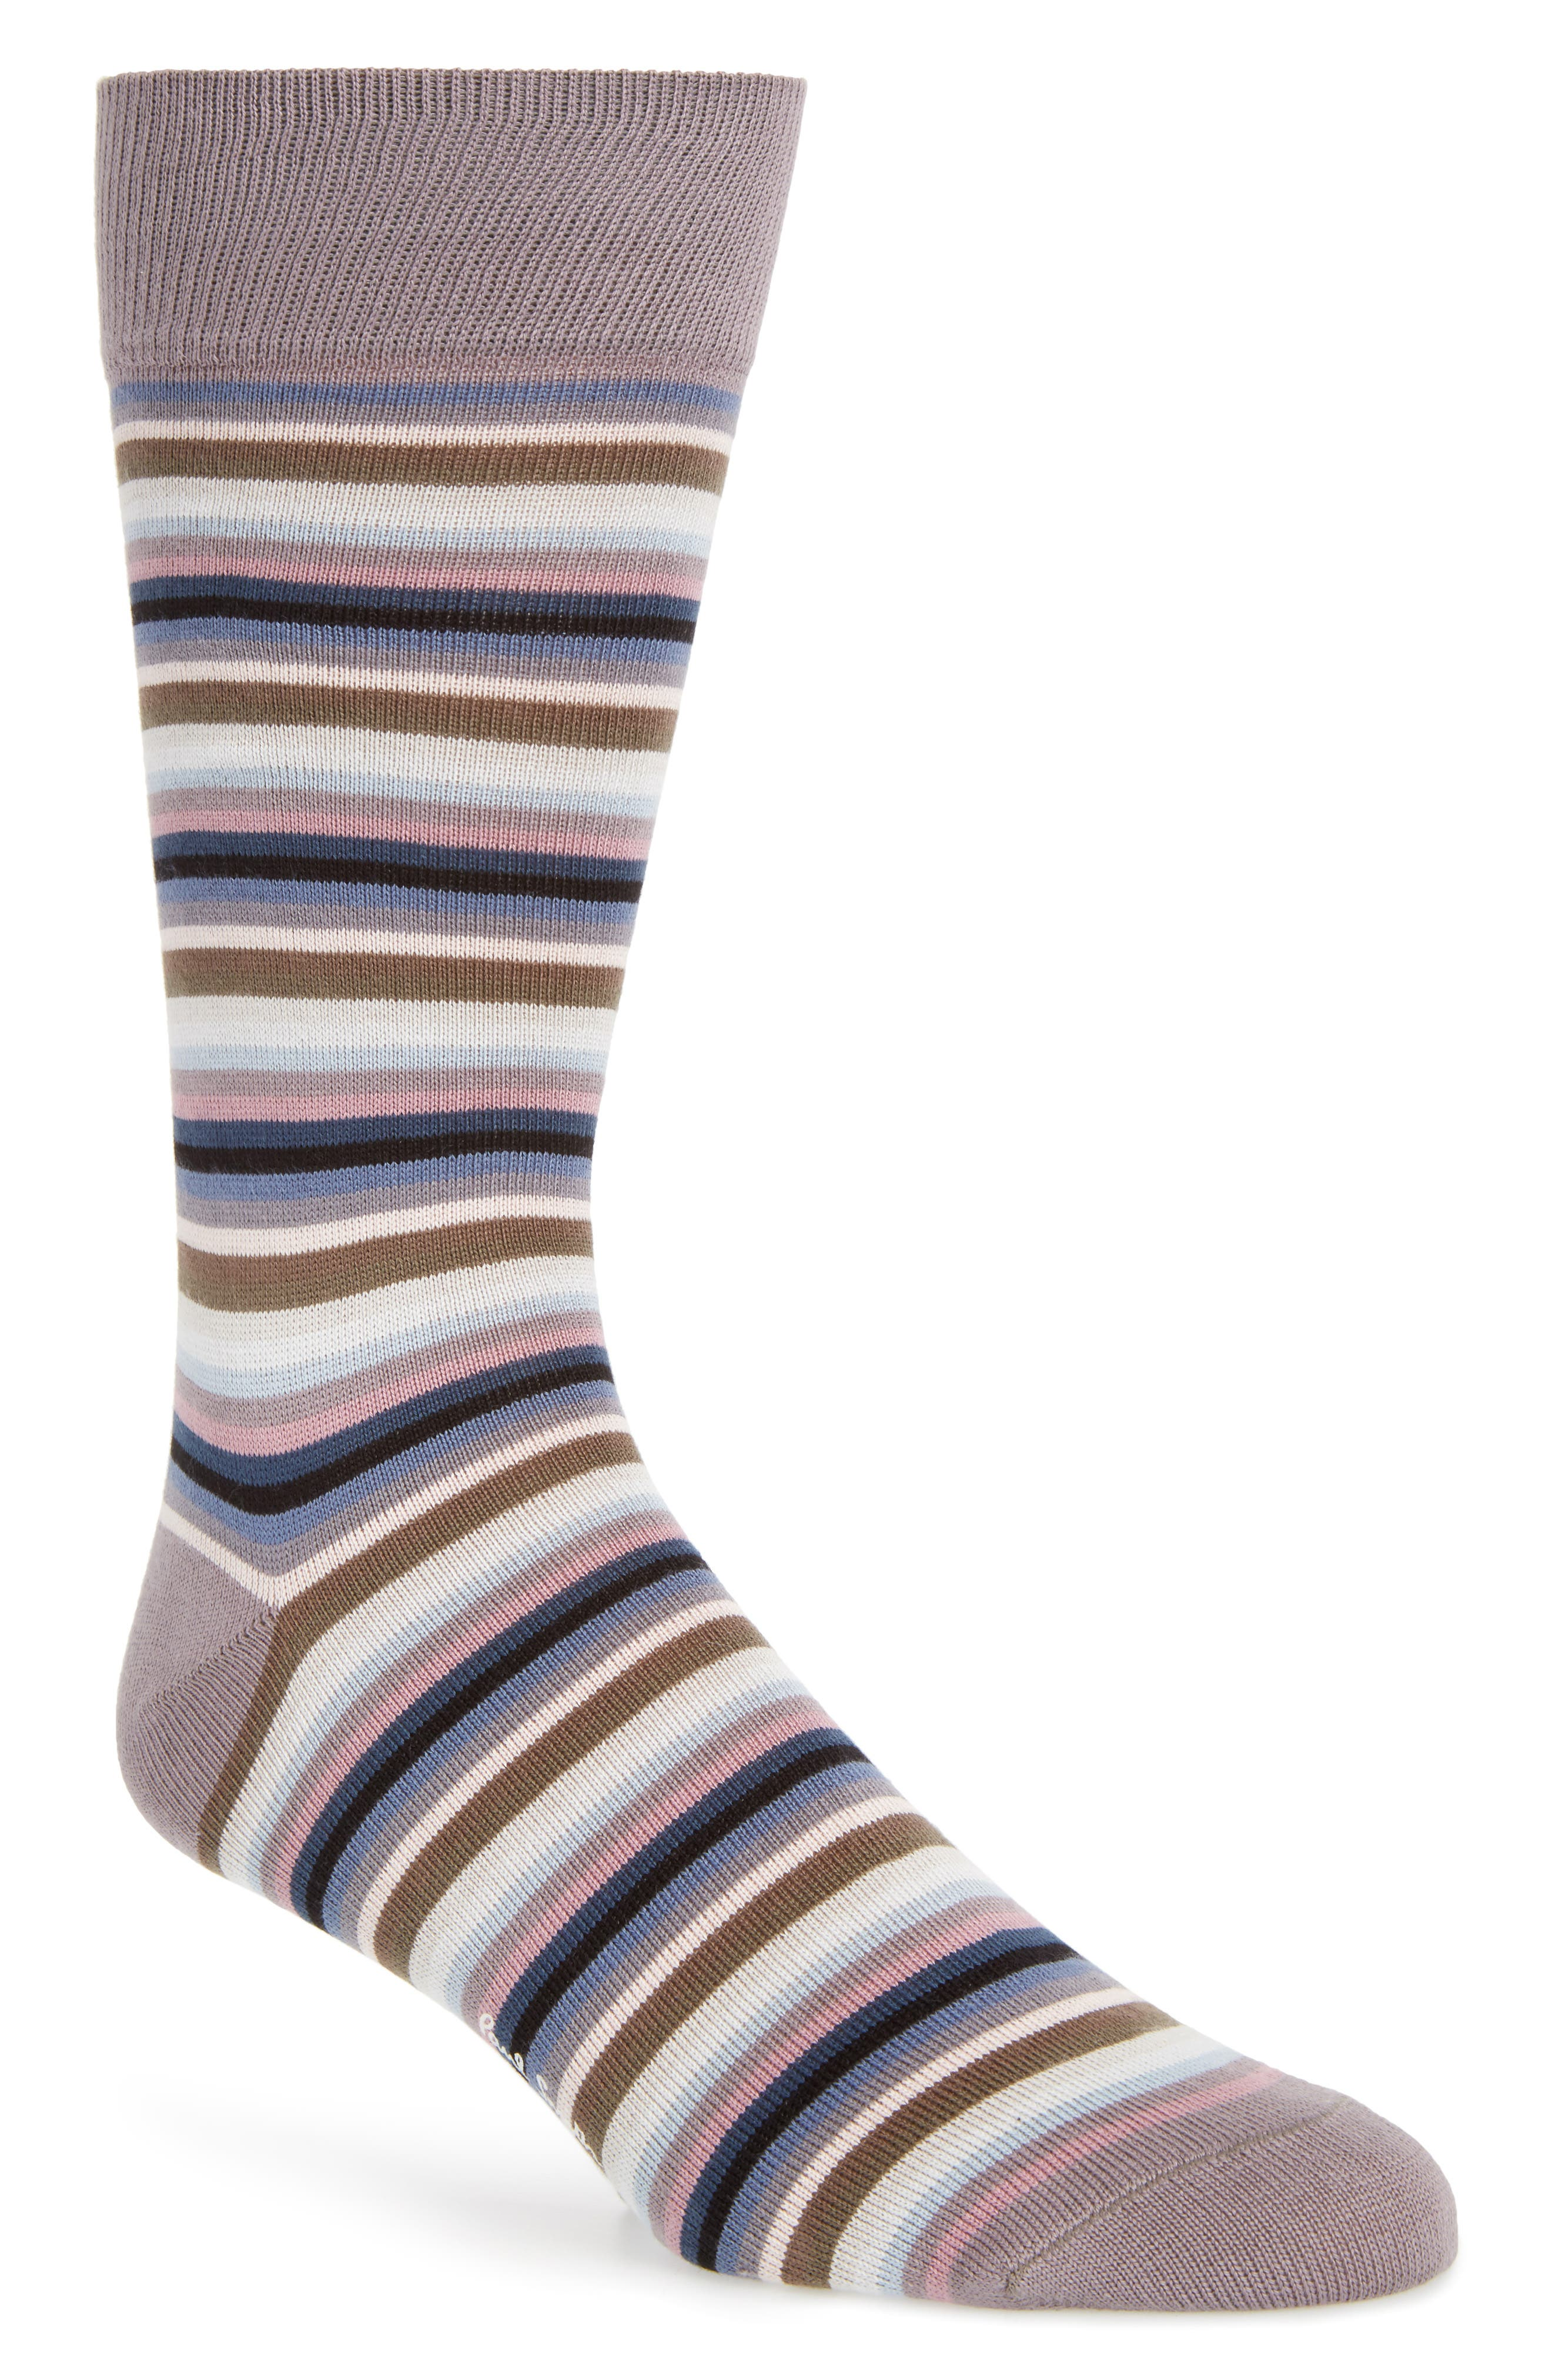 Paul Smith Degradé Stripe Socks